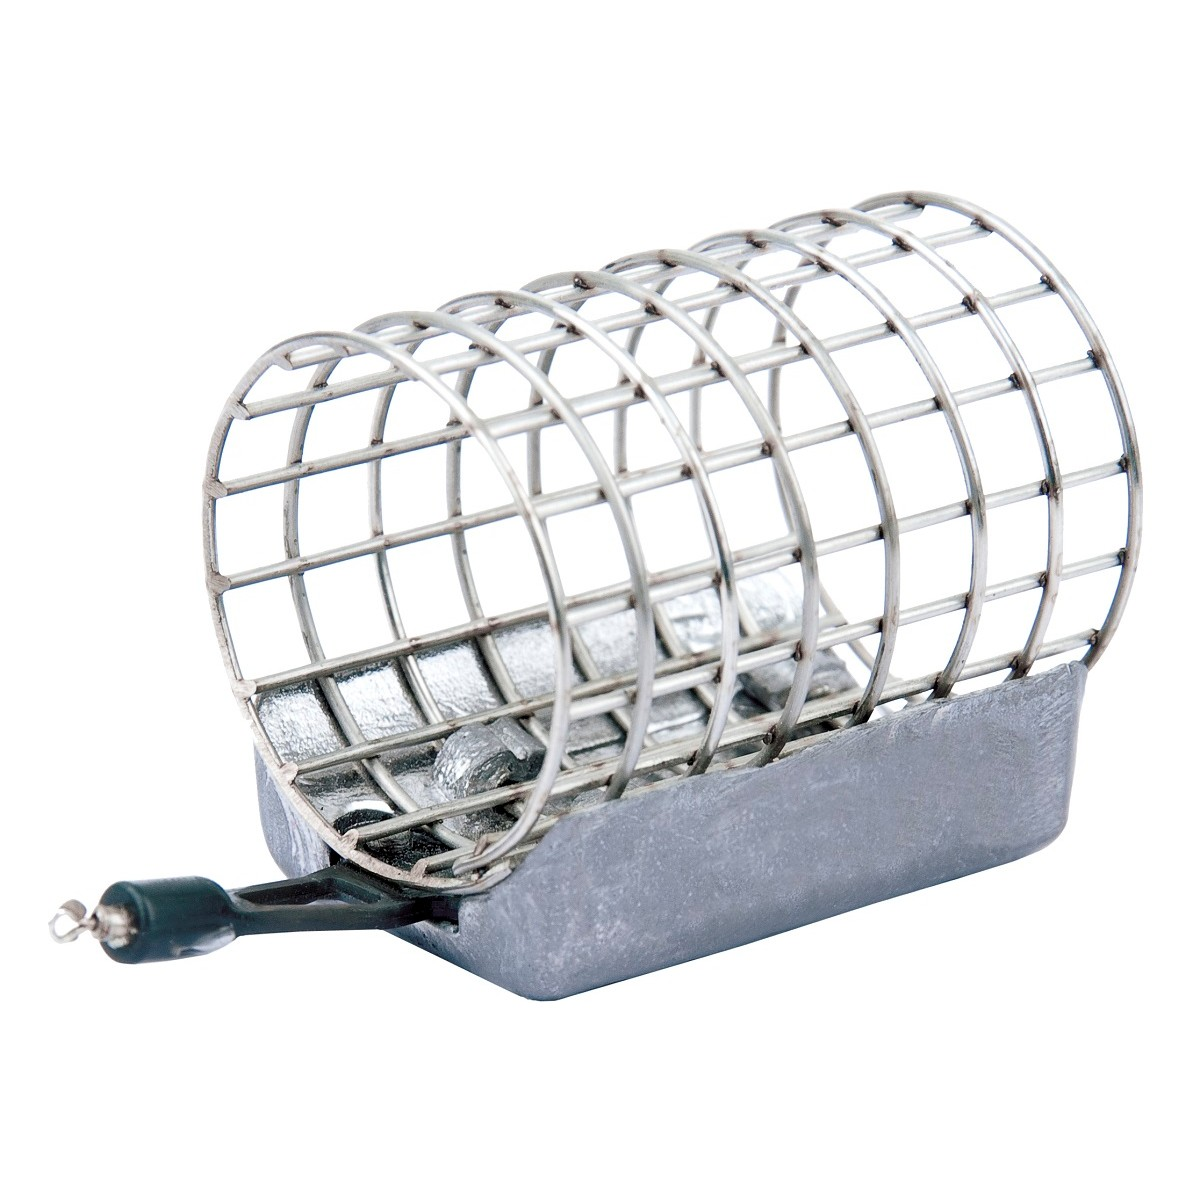 Фидер кошничка Matrix Stainless Steel Cage Feeder Small